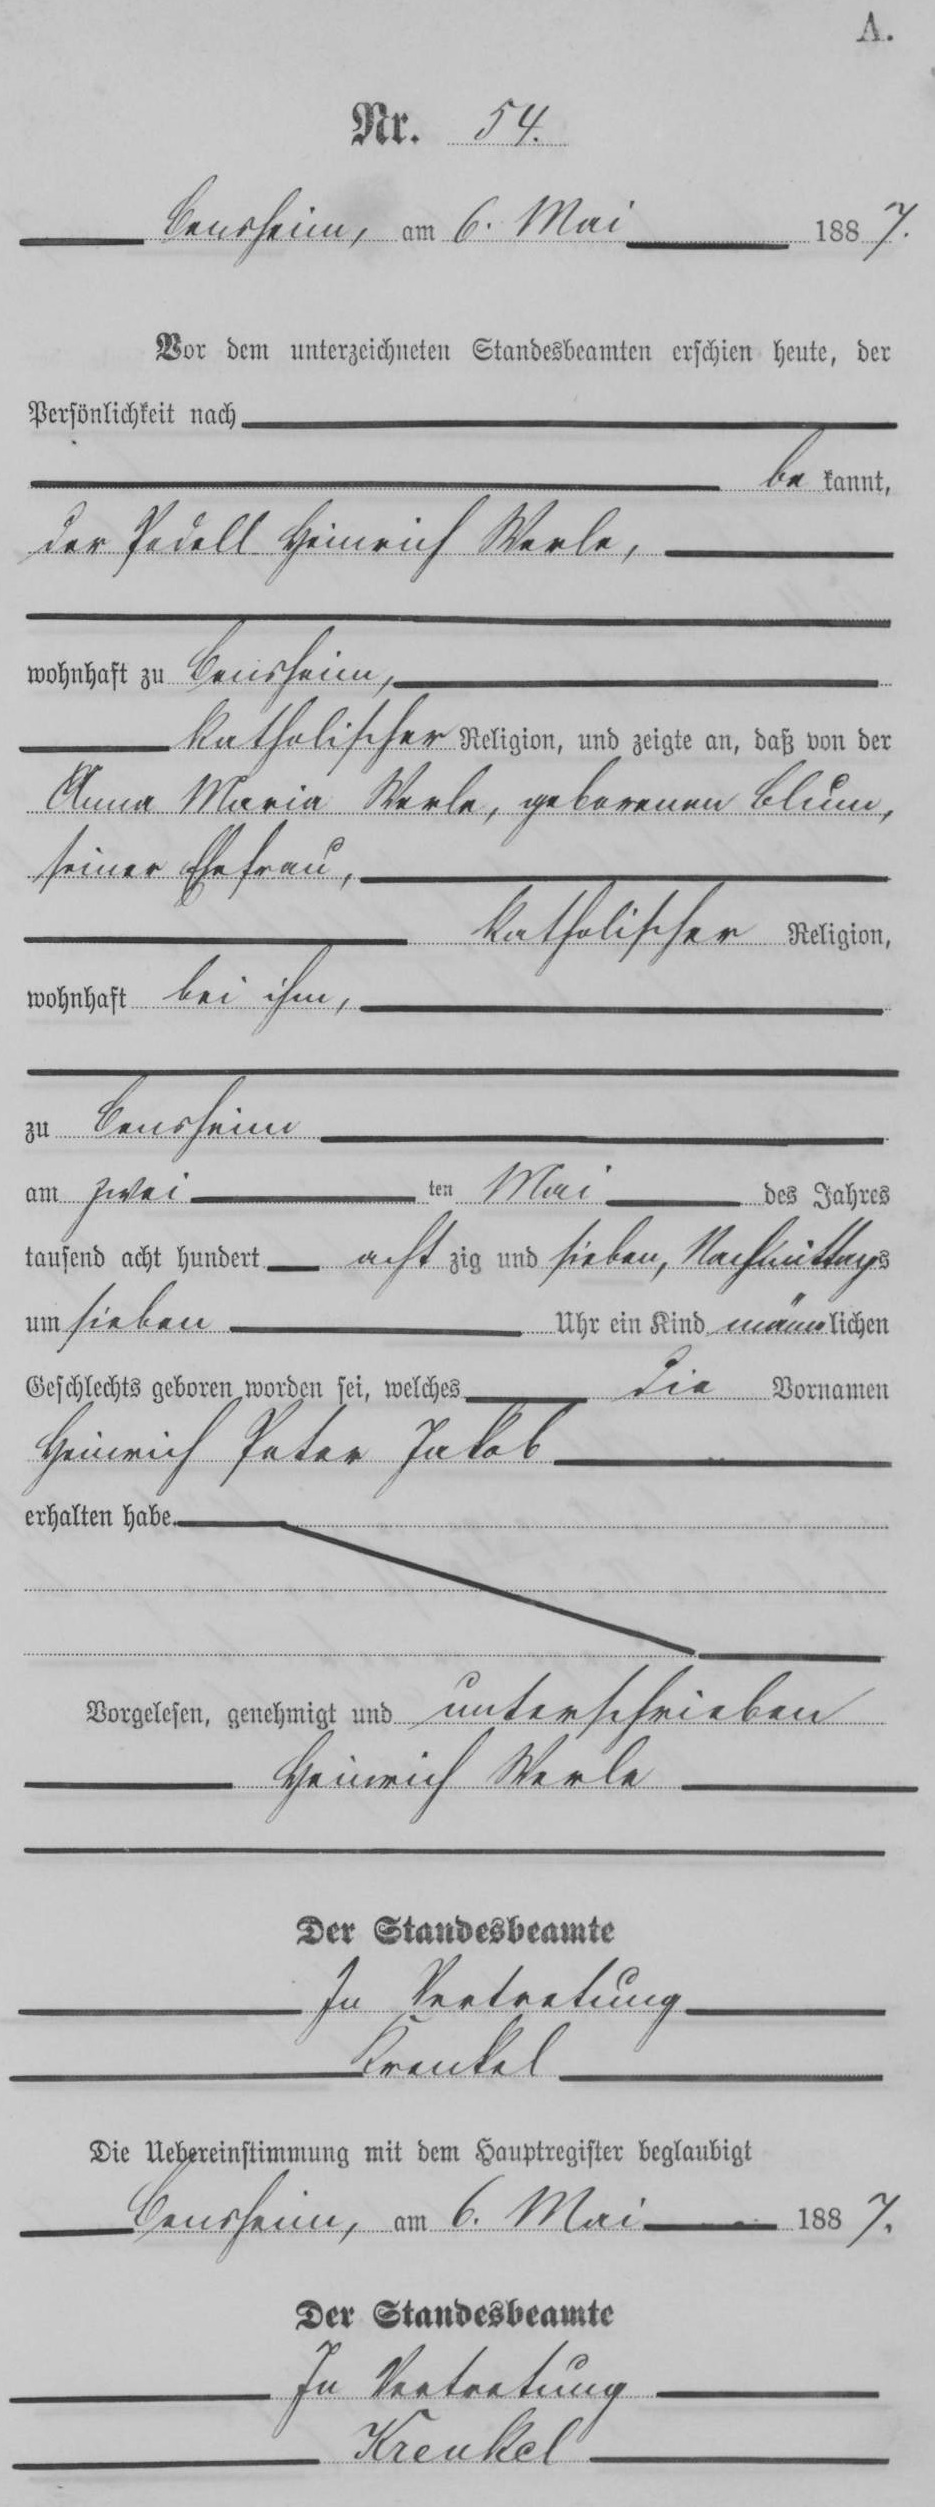 Birth record of Heinrich Werlé from the Germany, Hesse Birth Index, 1874–1911